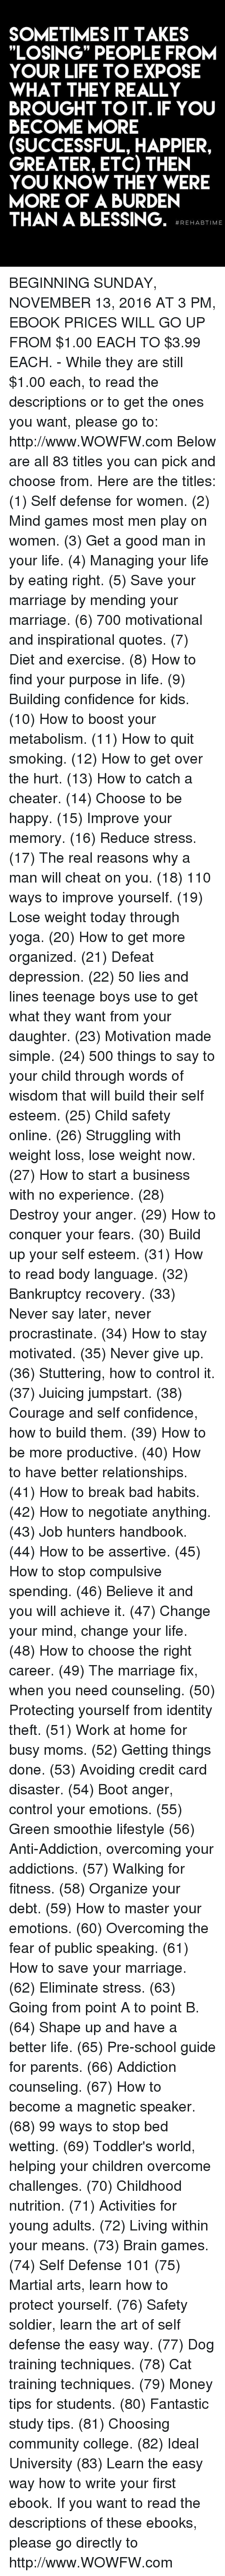 """Broughts: SOMETIMES IT TAKES  """"LOSING"""" PEOPLE FROM  YOUR LIFE TO EXPOSE  WHAT THEY REALLY  BROUGHT TO IT. IF YOU  BECOME MORE  (SUCCESSFUL, HAPPIER,  GREATER, ETC) THEN  YOU KNOW THEY WERE  MORE OF A BURDEN  THAN A BLESSING.  REHAB TIME BEGINNING SUNDAY, NOVEMBER 13, 2016 AT 3 PM, EBOOK PRICES WILL GO UP FROM $1.00 EACH TO $3.99 EACH. - While they are still $1.00 each, to read the descriptions or to get the ones you want, please go to: http://www.WOWFW.com  Below are all 83 titles you can pick and choose from.   Here are the titles: (1) Self defense for women. (2) Mind games most men play on women. (3) Get a good man in your life. (4) Managing your life by eating right. (5) Save your marriage by mending your marriage. (6) 700 motivational and inspirational quotes. (7) Diet and exercise. (8) How to find your purpose in life. (9) Building confidence for kids. (10) How to boost your metabolism. (11) How to quit smoking. (12) How to get over the hurt. (13) How to catch a cheater. (14) Choose to be happy. (15) Improve your memory. (16) Reduce stress. (17) The real reasons why a man will cheat on you. (18) 110 ways to improve yourself. (19) Lose weight today through yoga. (20) How to get more organized. (21) Defeat depression. (22) 50 lies and lines teenage boys use to get what they want from your daughter. (23) Motivation made simple. (24) 500 things to say to your child through words of wisdom that will build their self esteem.   (25) Child safety online. (26) Struggling with weight loss, lose weight now. (27) How to start a business with no experience. (28) Destroy your anger. (29) How to conquer your fears. (30) Build up your self esteem. (31) How to read body language. (32) Bankruptcy recovery. (33) Never say later, never procrastinate. (34) How to stay motivated. (35) Never give up. (36) Stuttering, how to control it. (37) Juicing jumpstart. (38) Courage and self confidence, how to build them. (39) How to be more productive. (40) How to have better relationships. (4"""